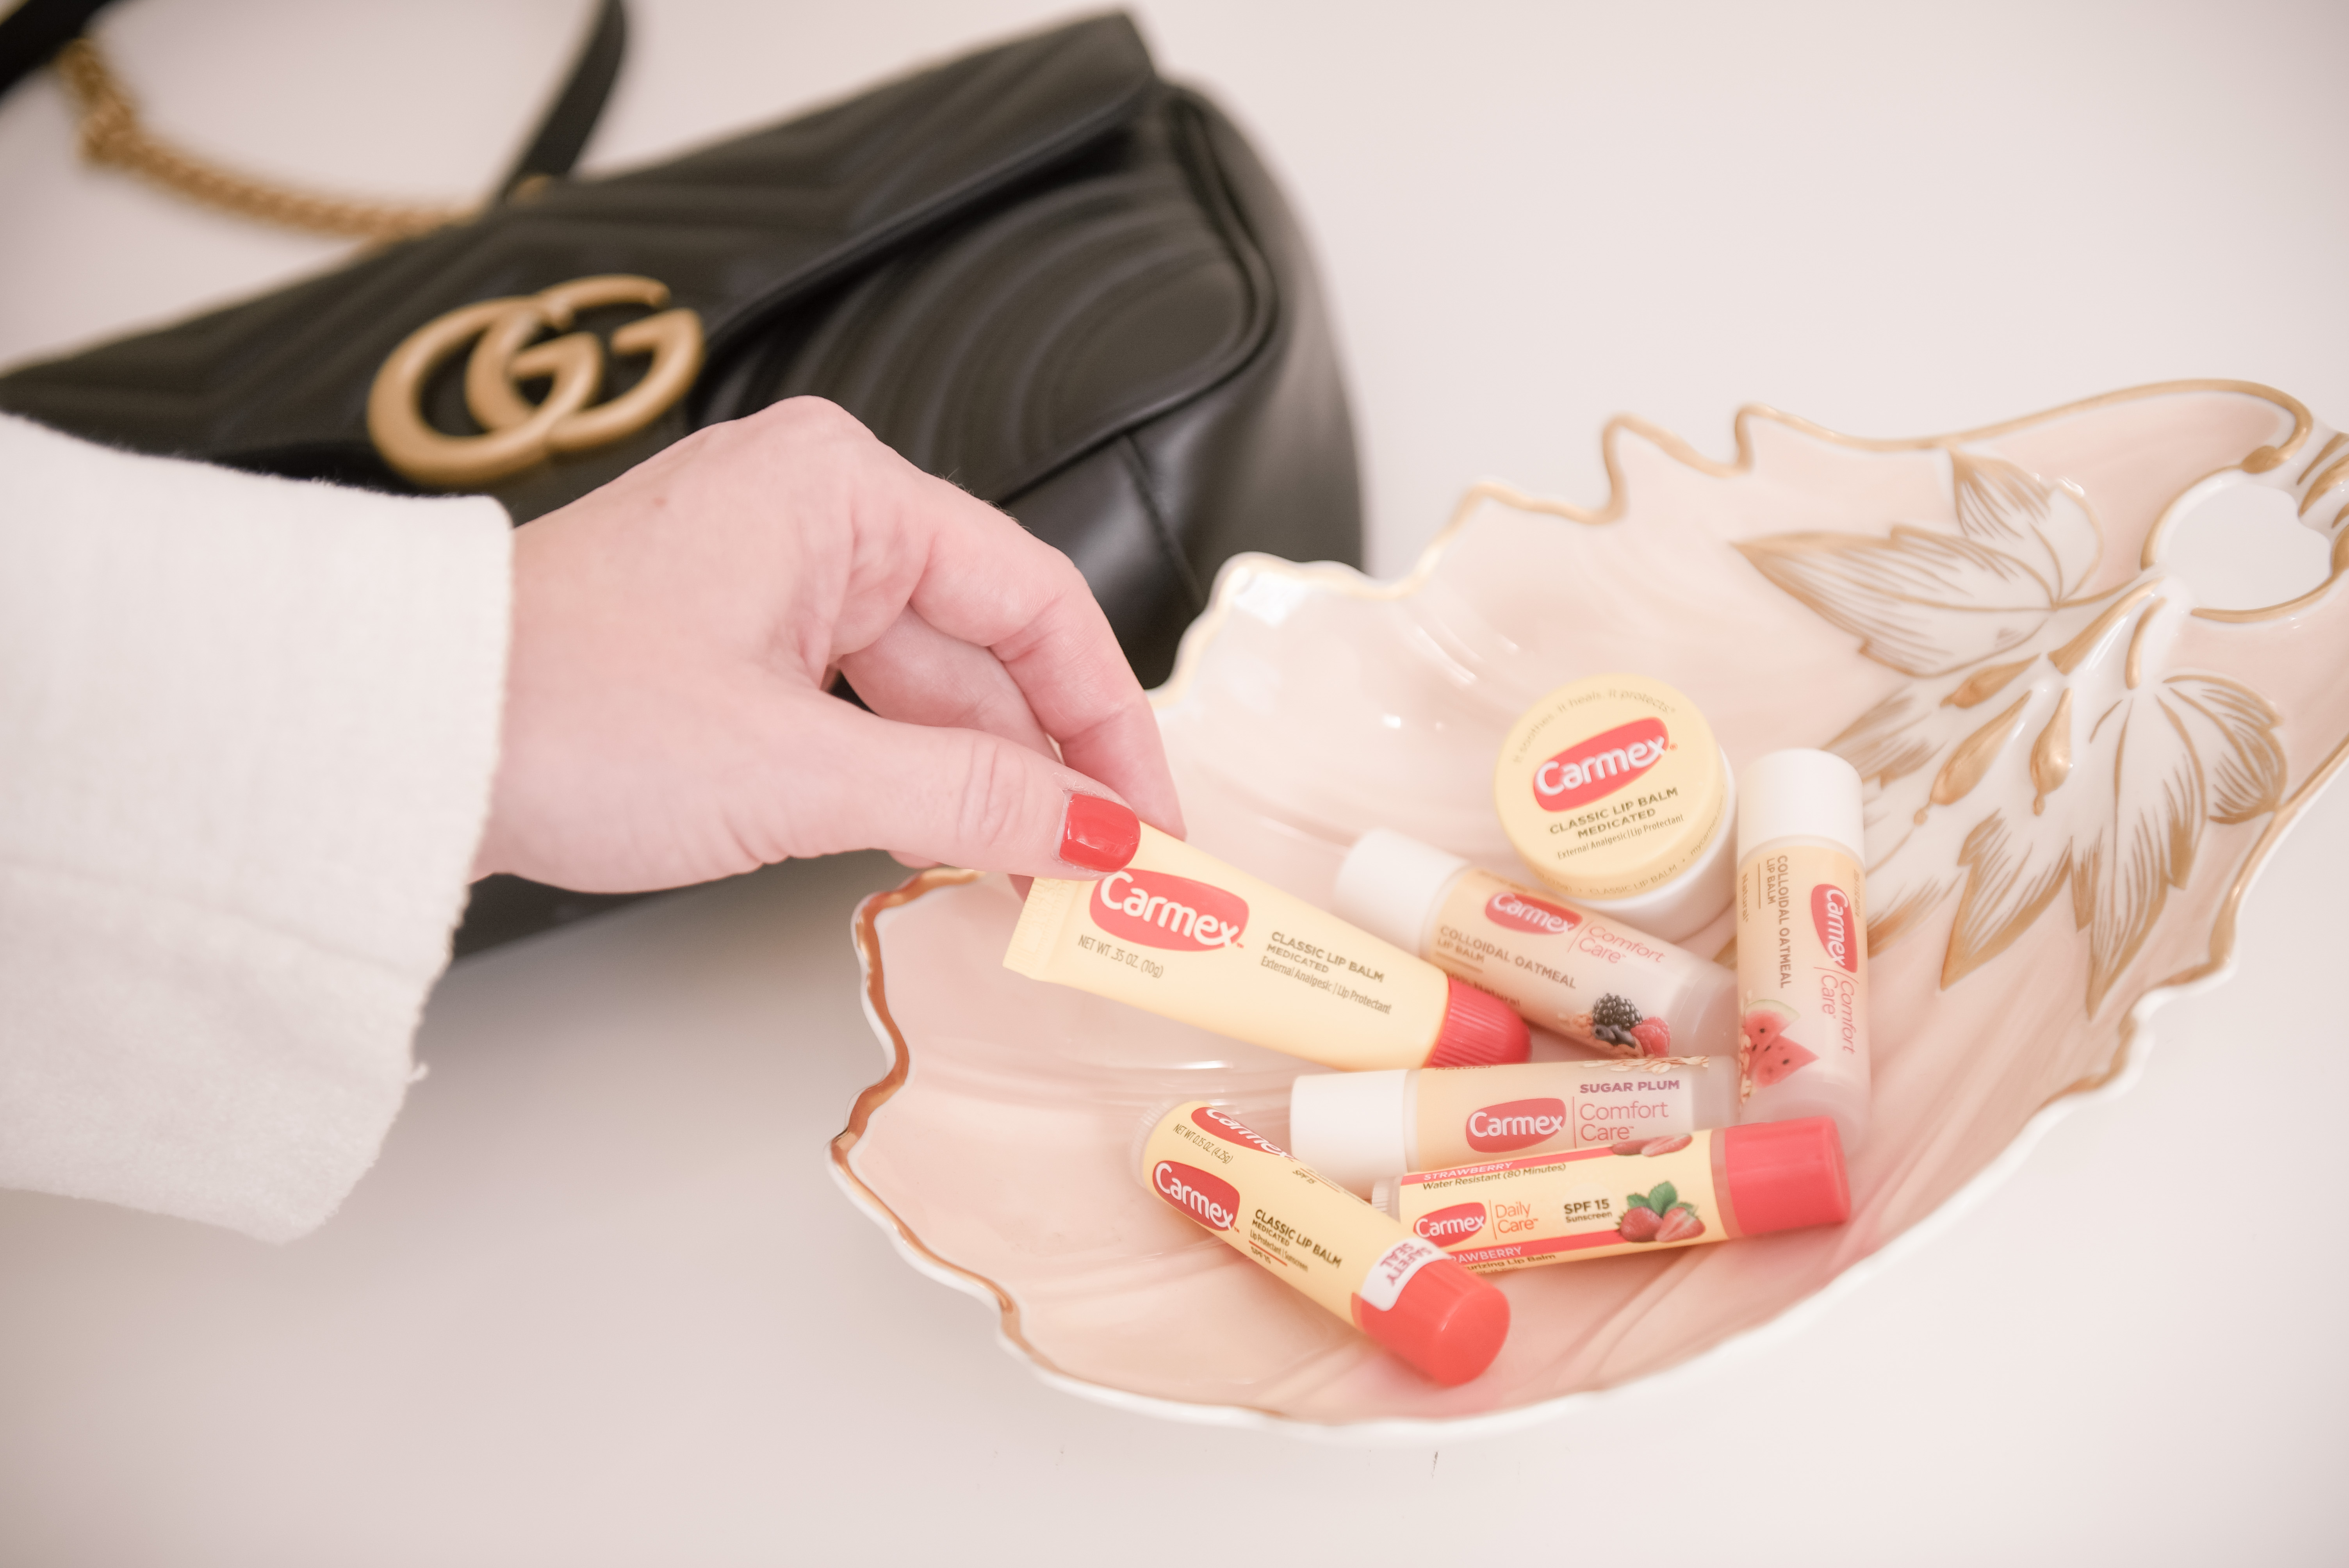 Carmex Lip Balm: Staying Hydrated in Winter | Every Chic Way